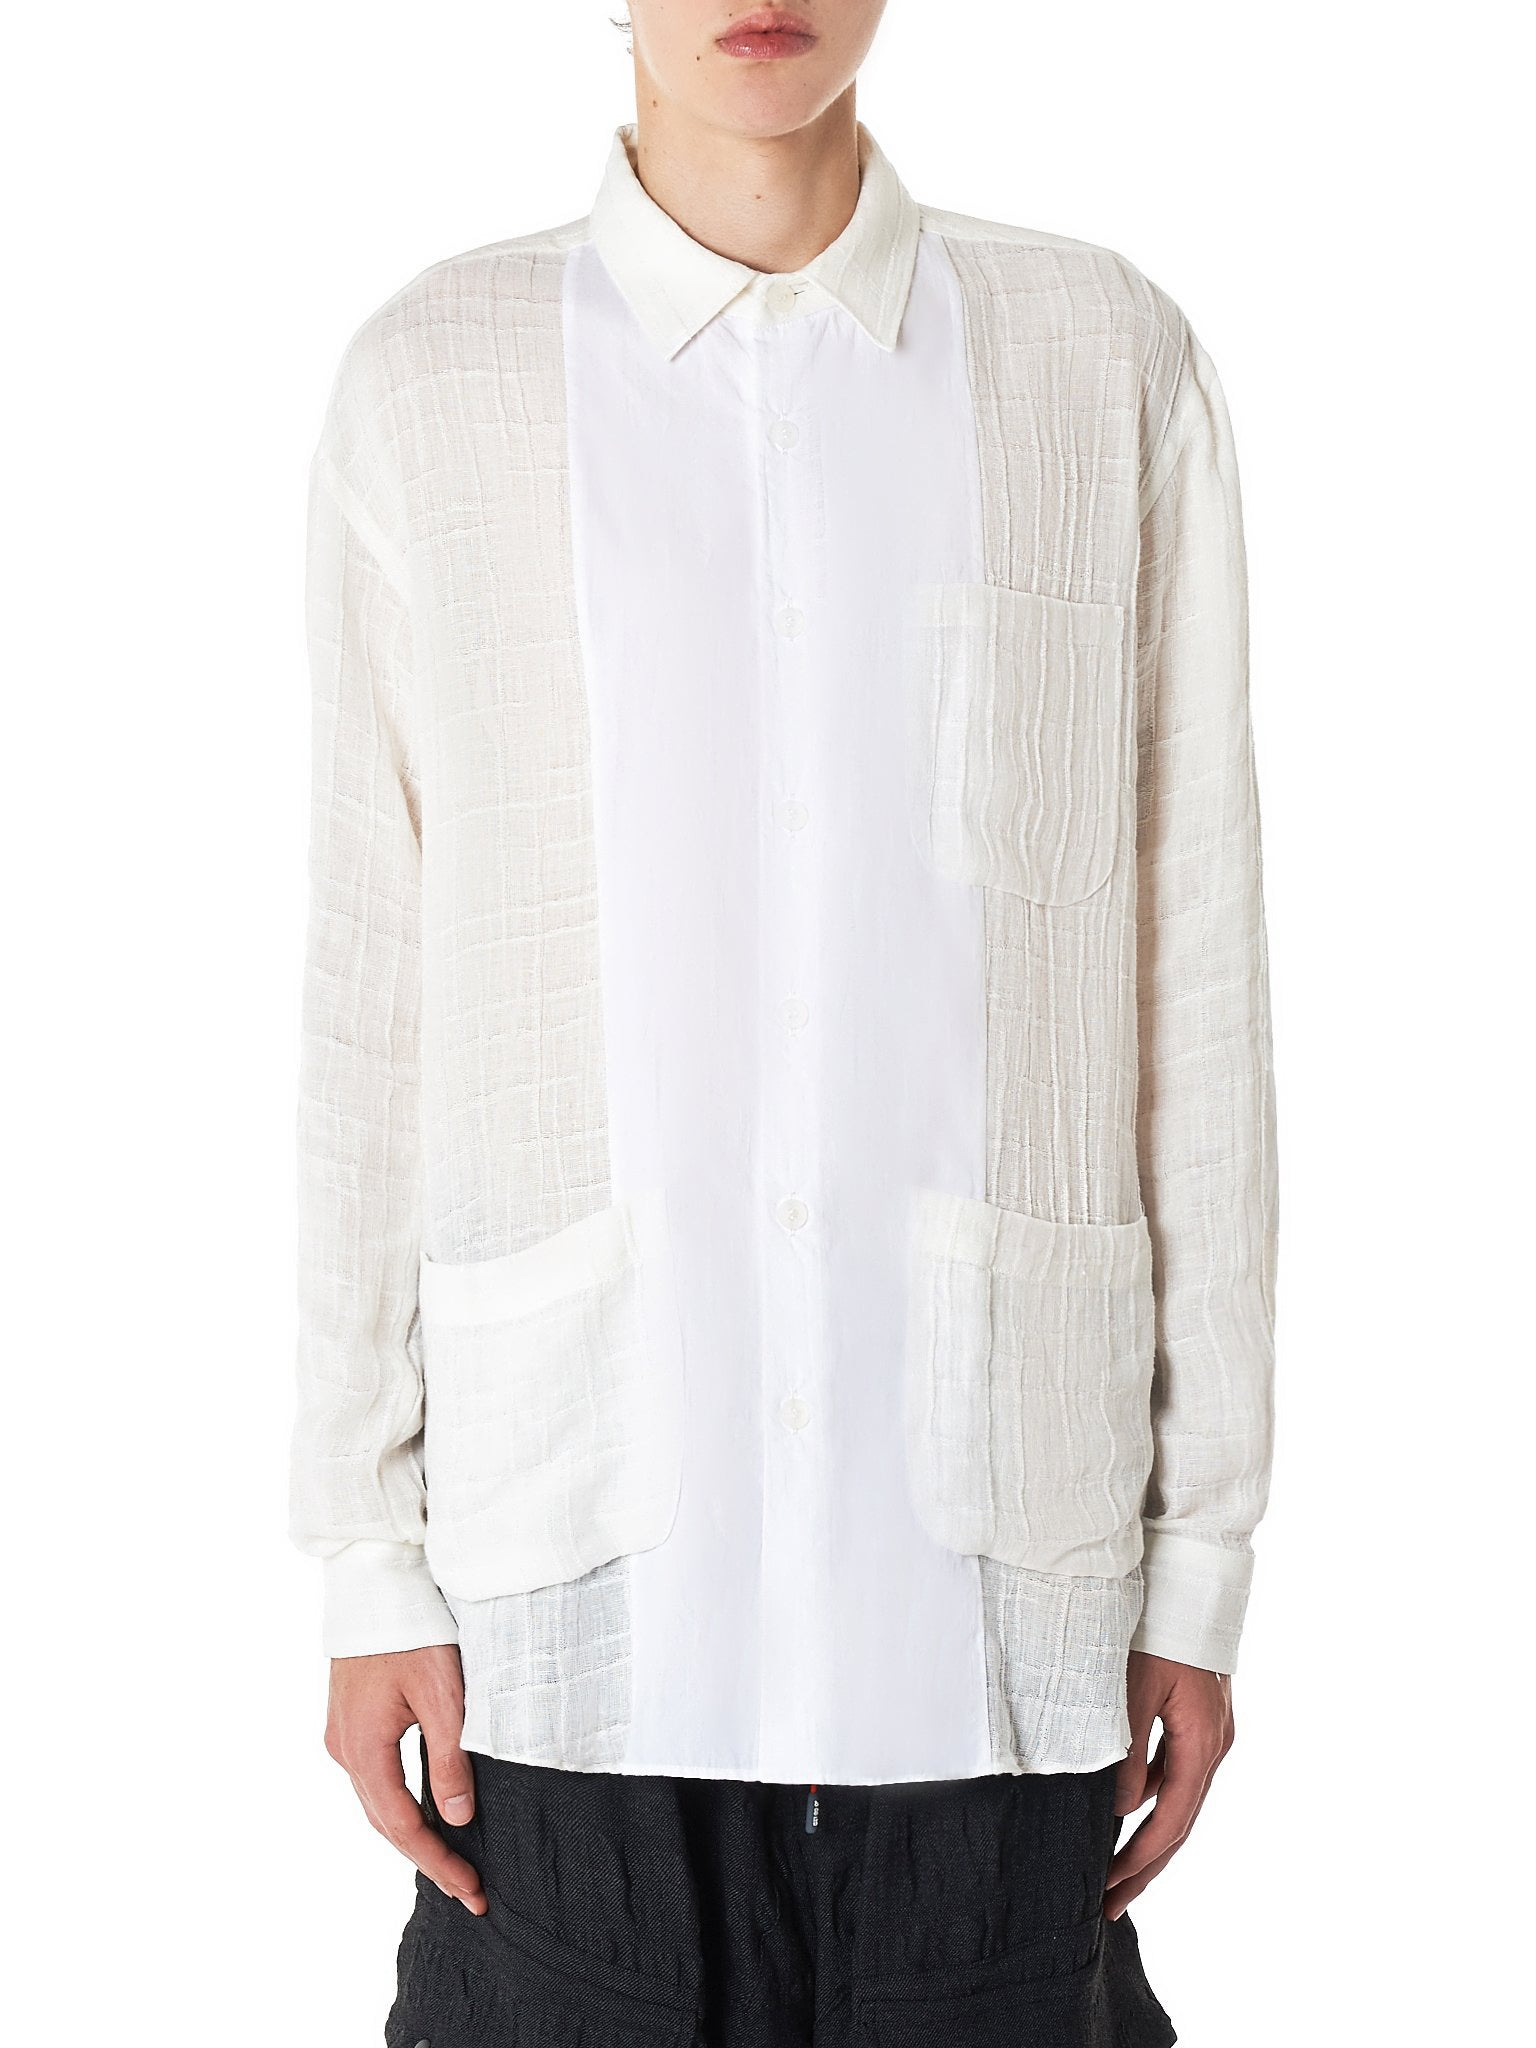 Julien David Shirt - Hlorenzo Front